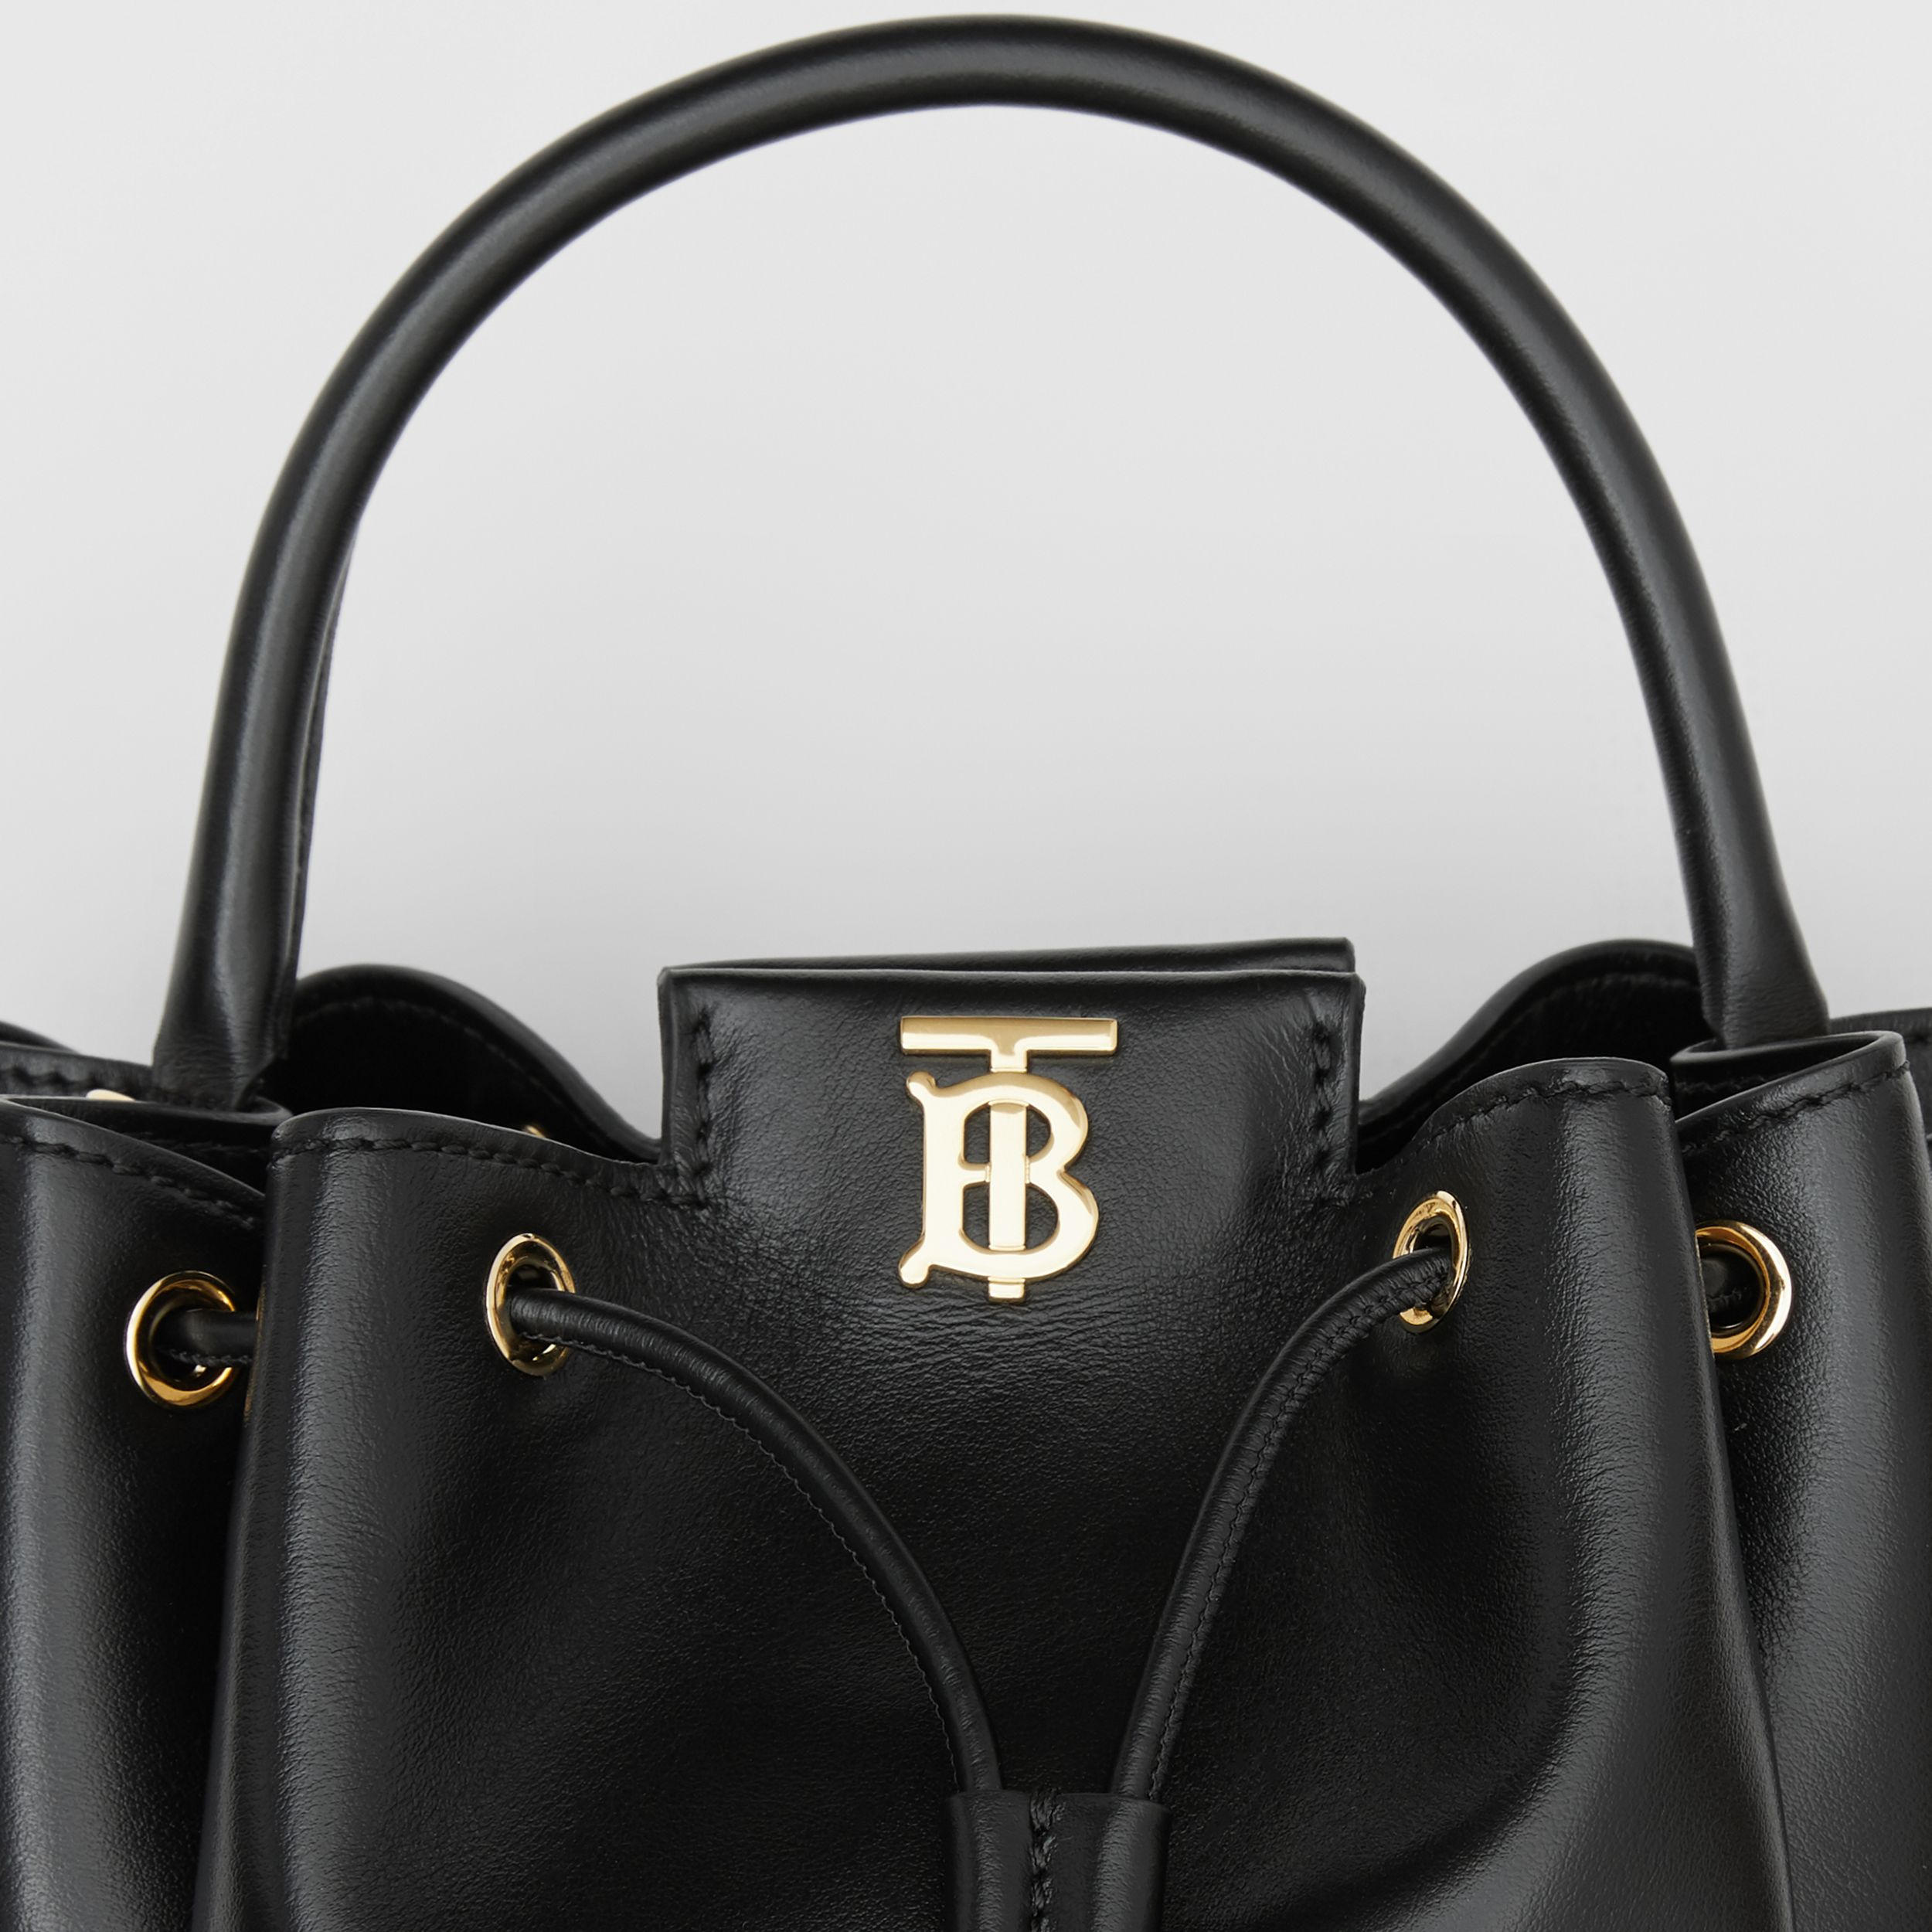 Monogram Motif Leather Bucket Bag in Black - Women | Burberry Canada - 2